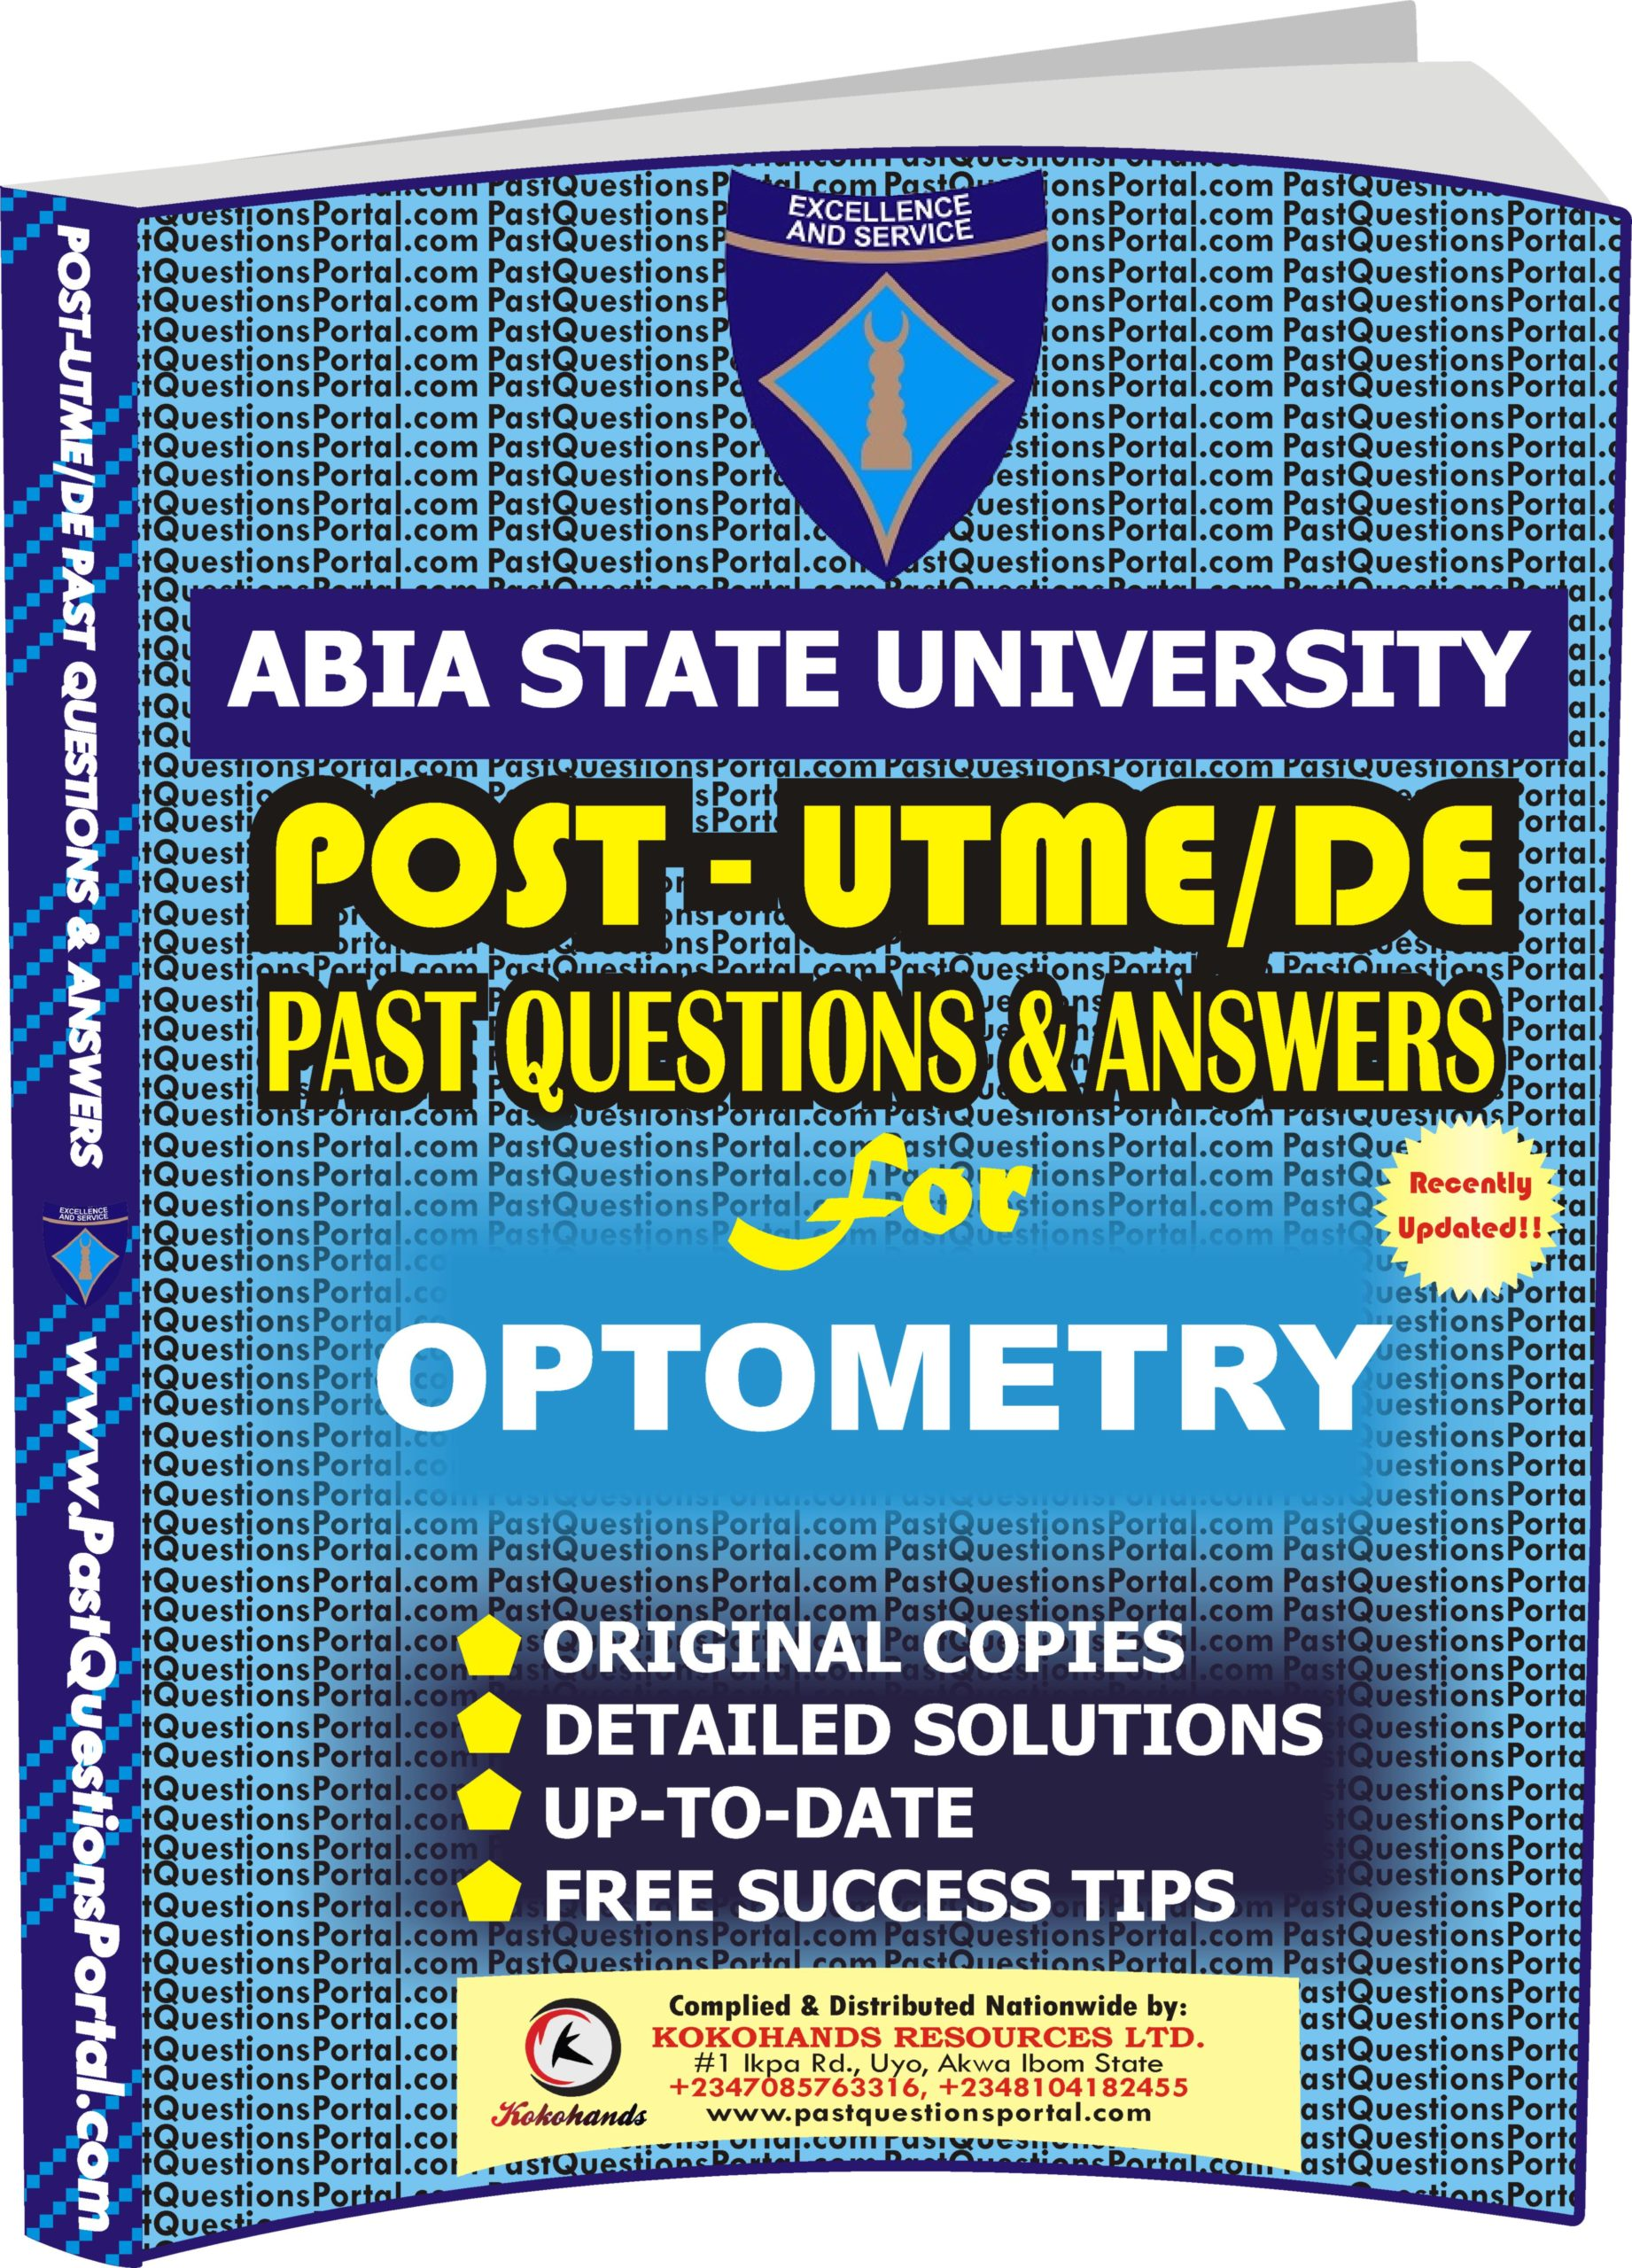 ABSU Post UTME Past Questions for OPTOMETRY